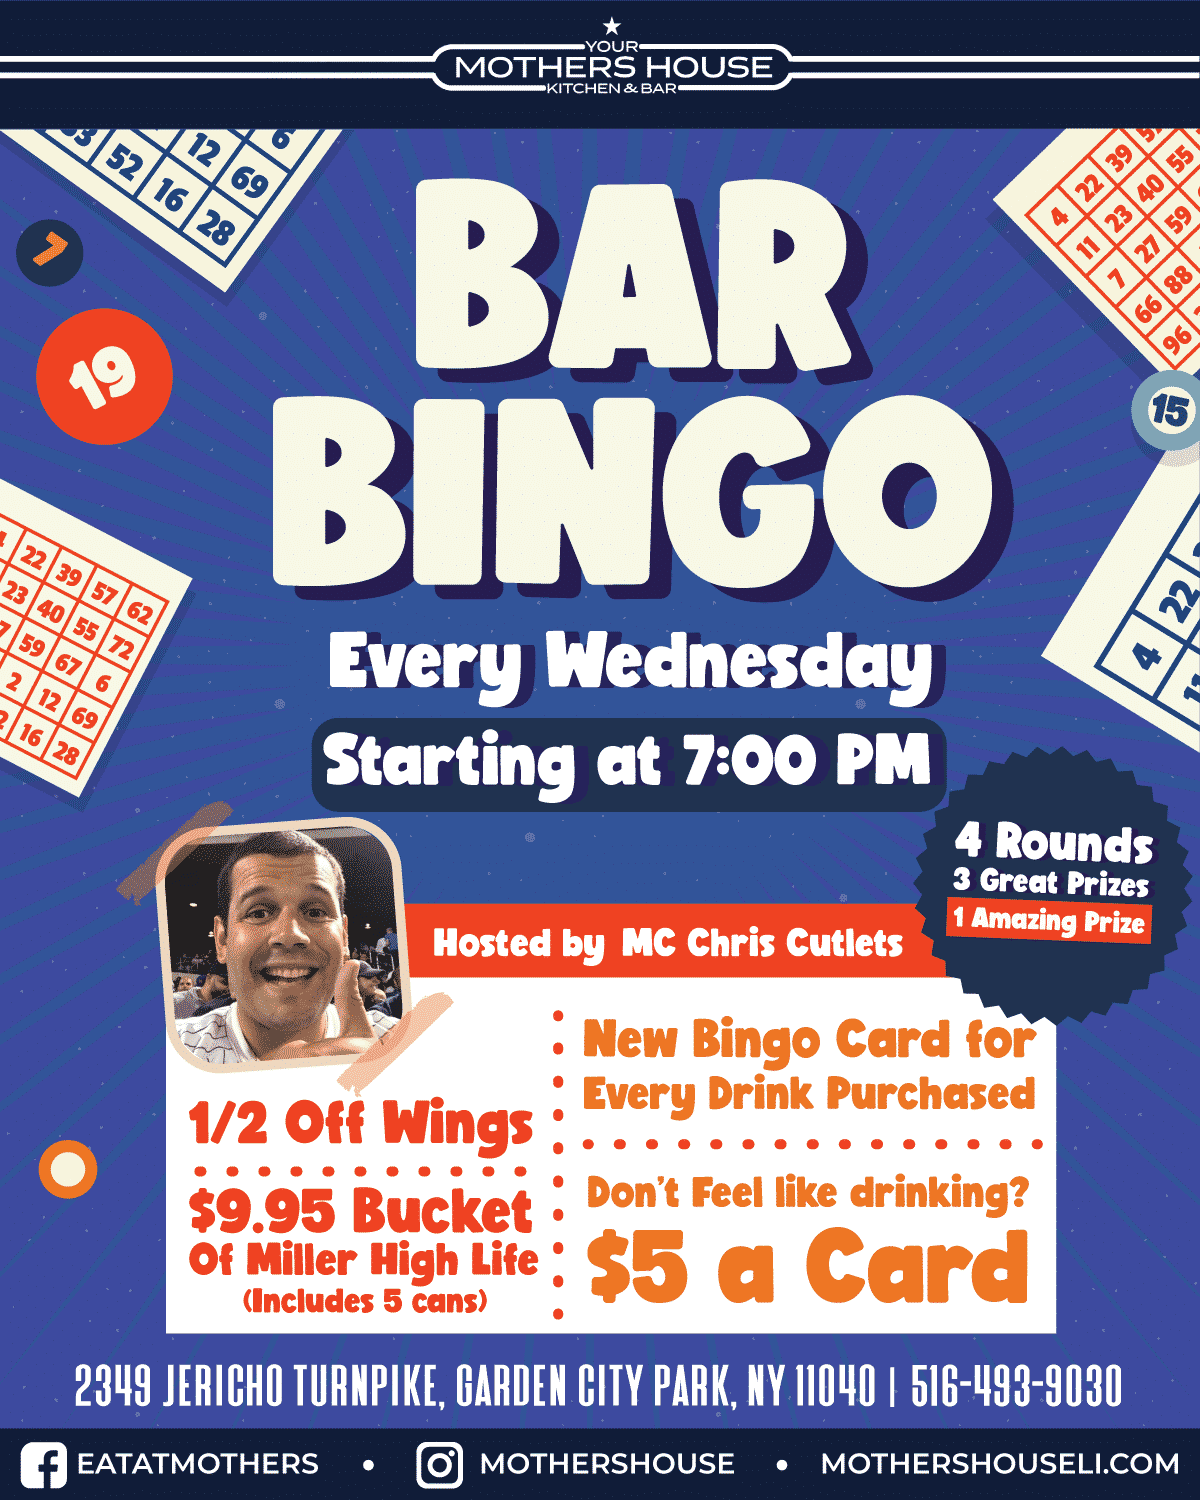 Flyer for Bar Bingo every Wednesday starting at 7pm. Hosting by MC Chris Cutlets. 1/2 off wings, $9.95 bucket of Miller high life includes 5 cans. 4 rounds, 3 great prizes, 1 amazing prize. new bingo card for every drink purchased. don't feel like drinking? $5 a card.